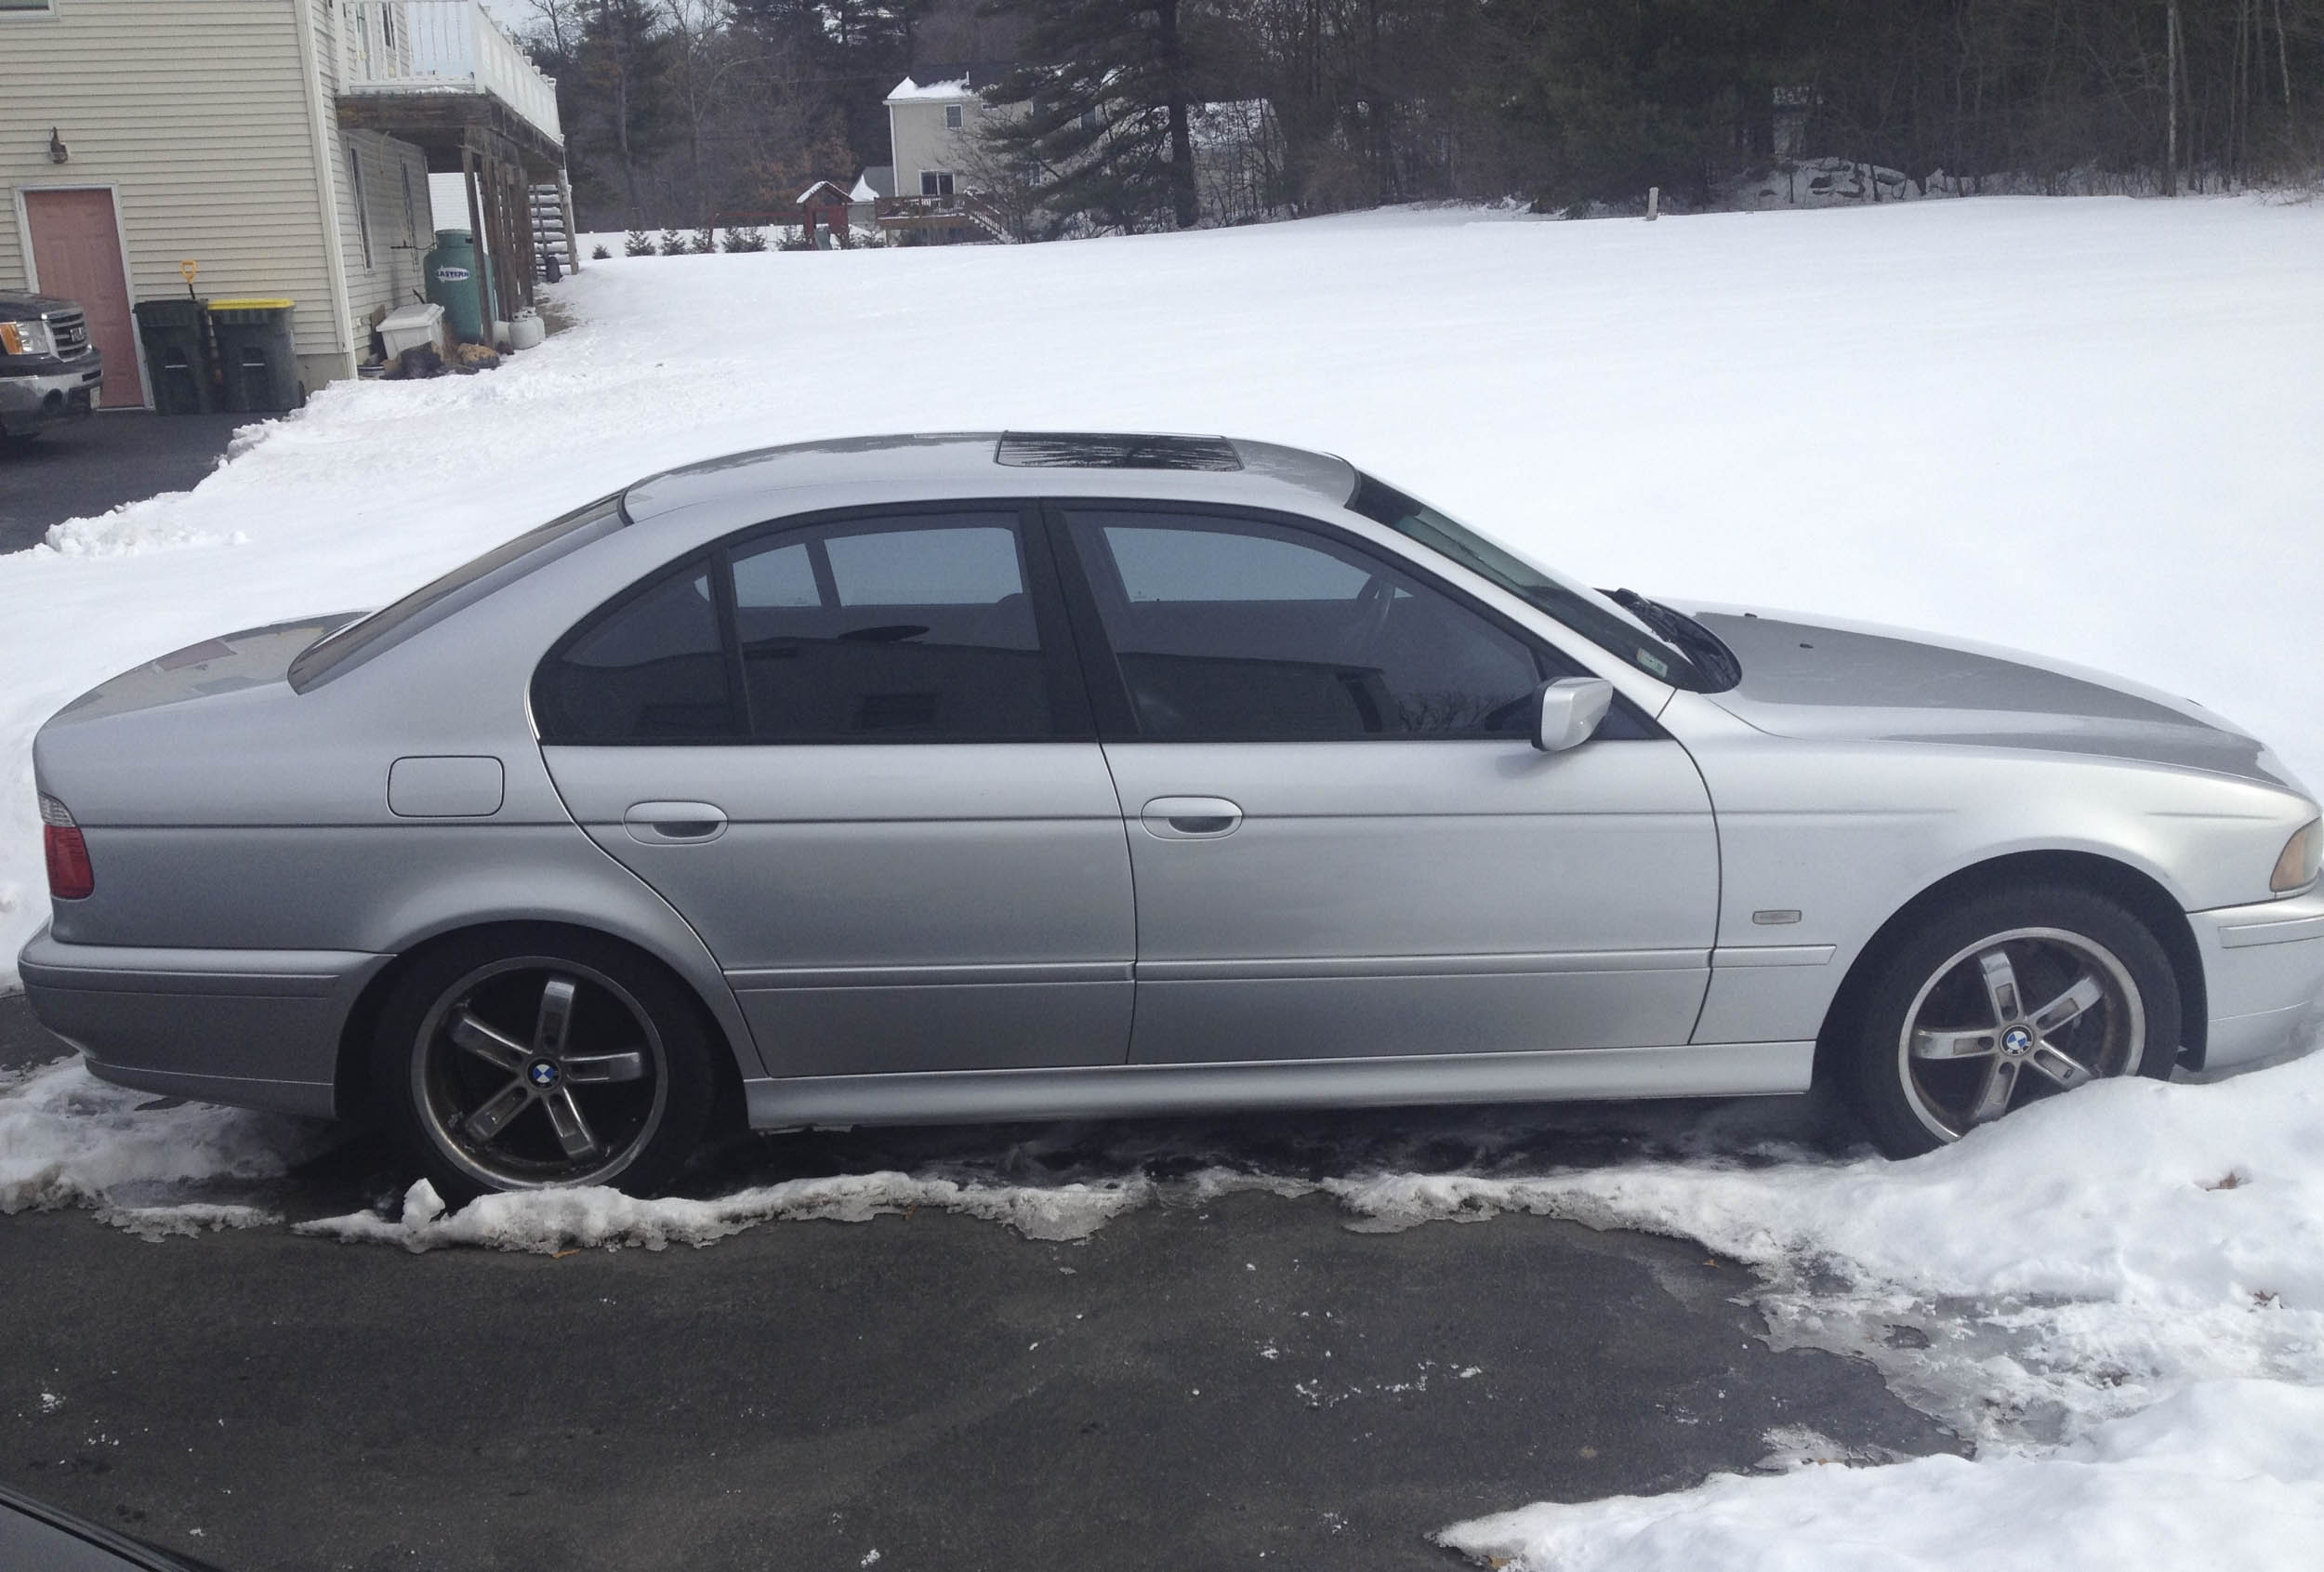 The 530i, despite being partially imprisoned by snow, looked promising, except for those horrible wheels.